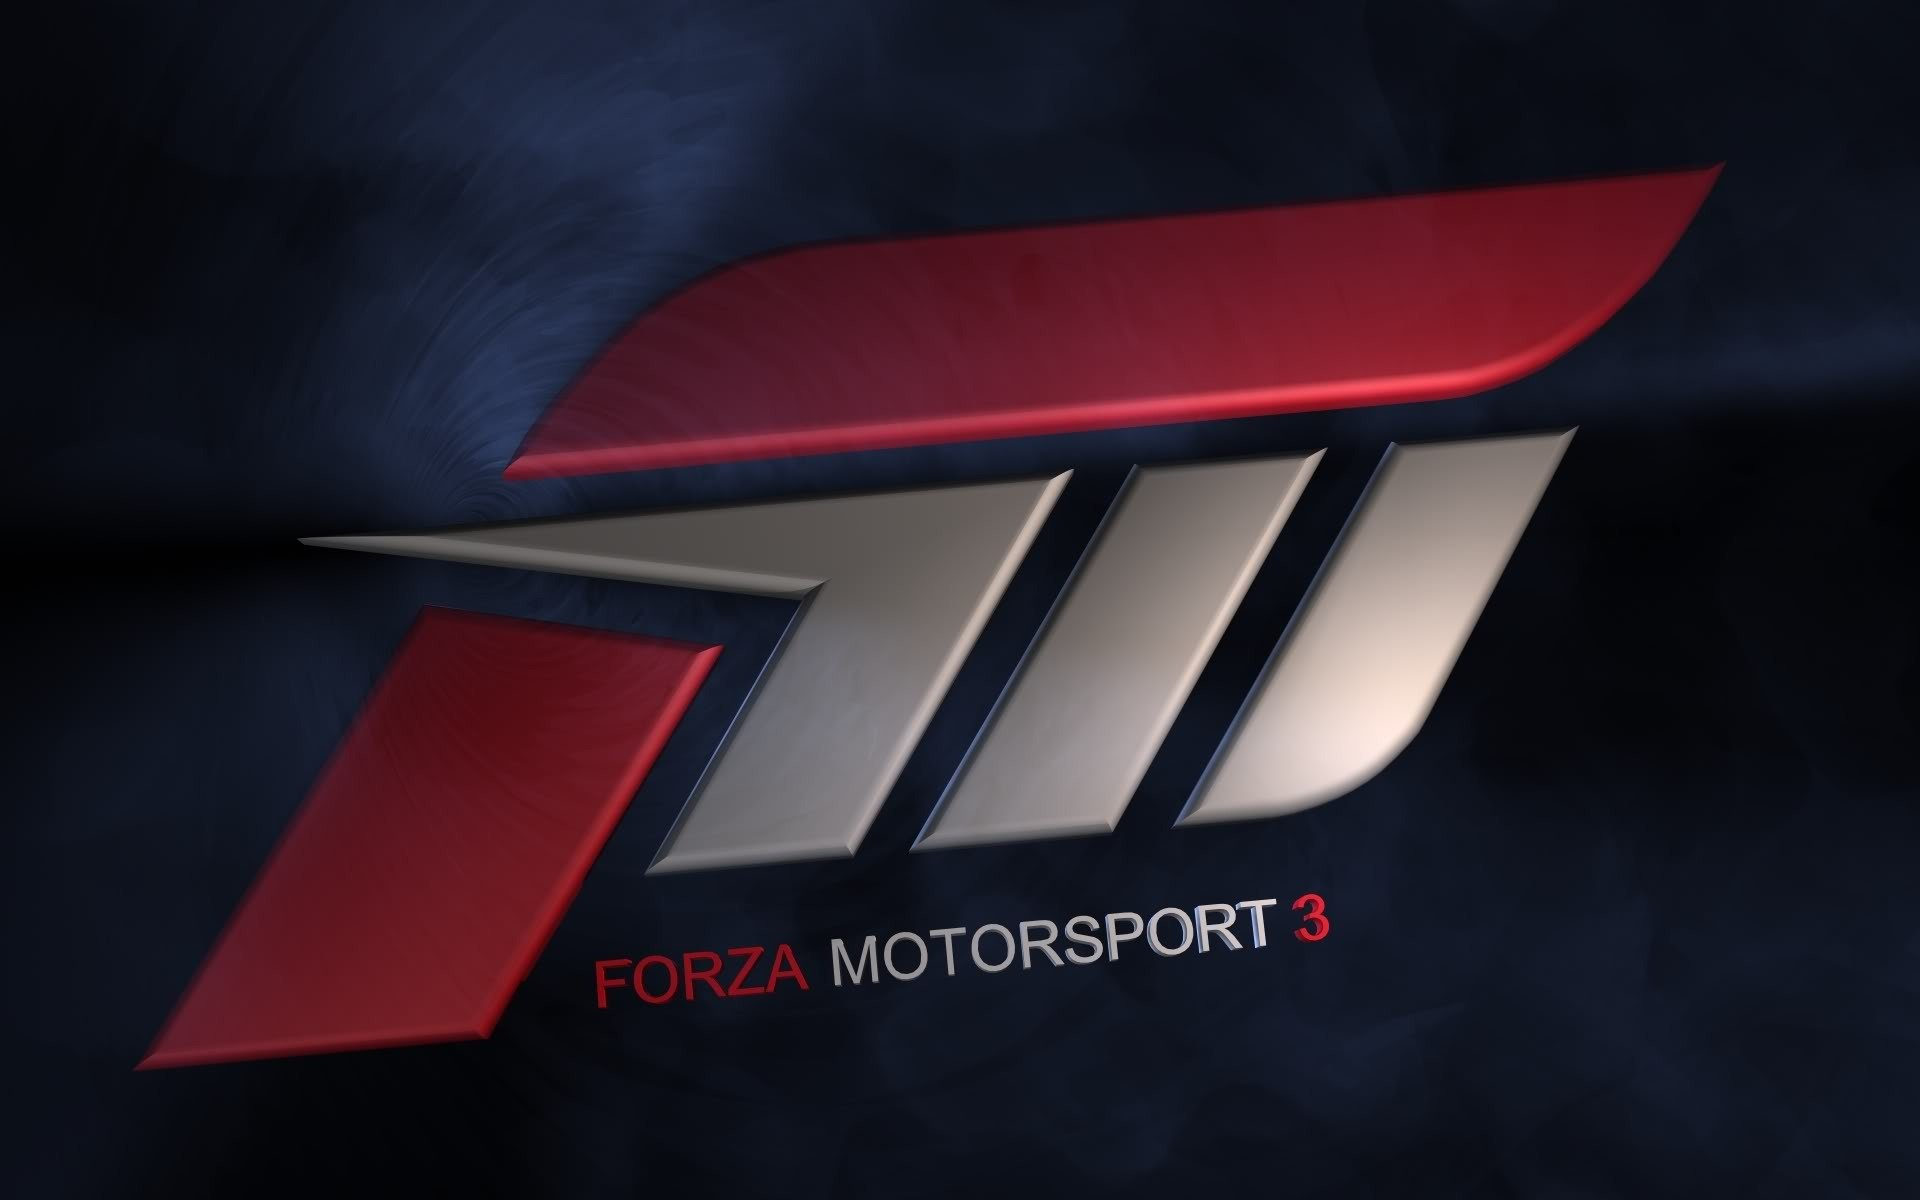 Forza Motorsport 3 wallpapers Forza Motorsport 3 stock photos 1920x1200